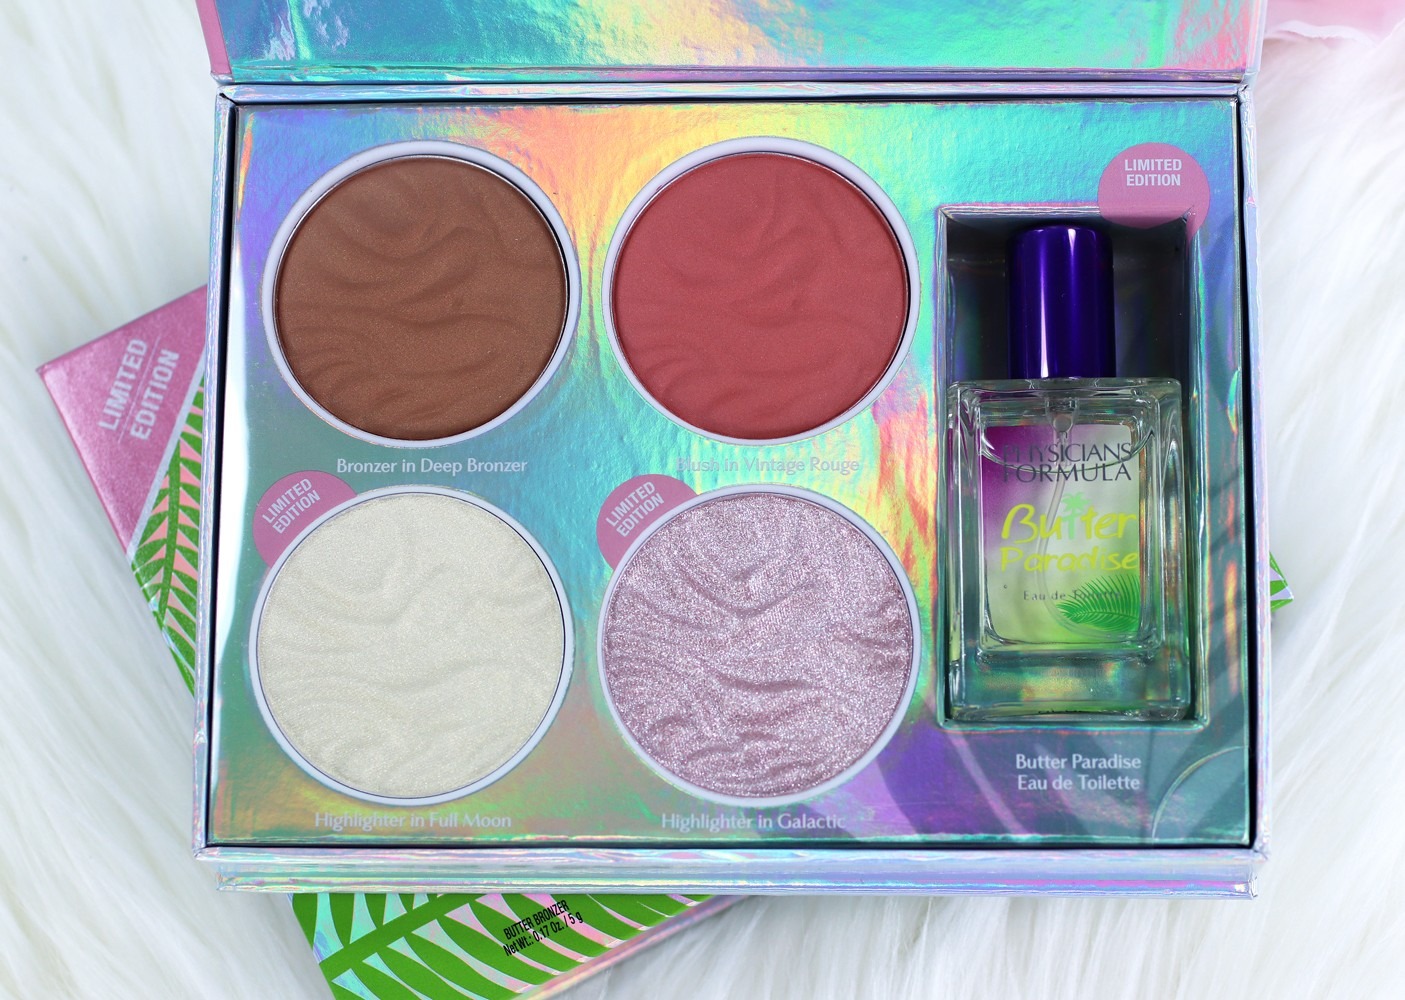 Physicians Formula Butter Collection Palette Medium Deep - Review and Swatches by Popular Los Angeles Cruelty Free Beauty Blogger, My Beauty Bunny